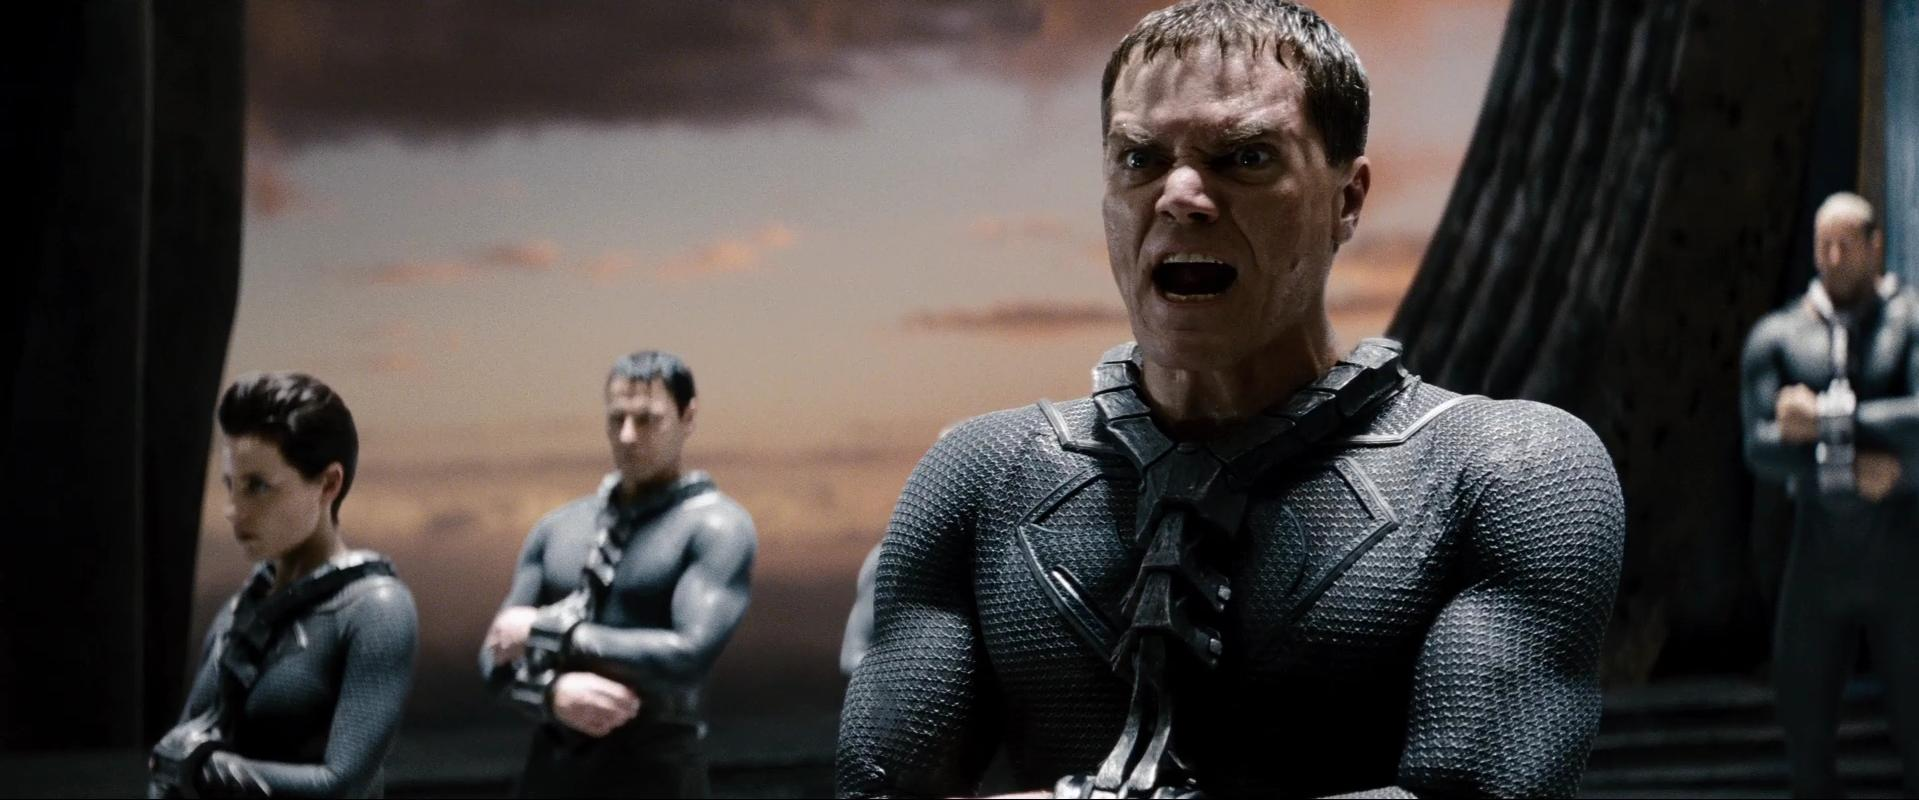 Michael Shannon Antje Traue Man of Steel